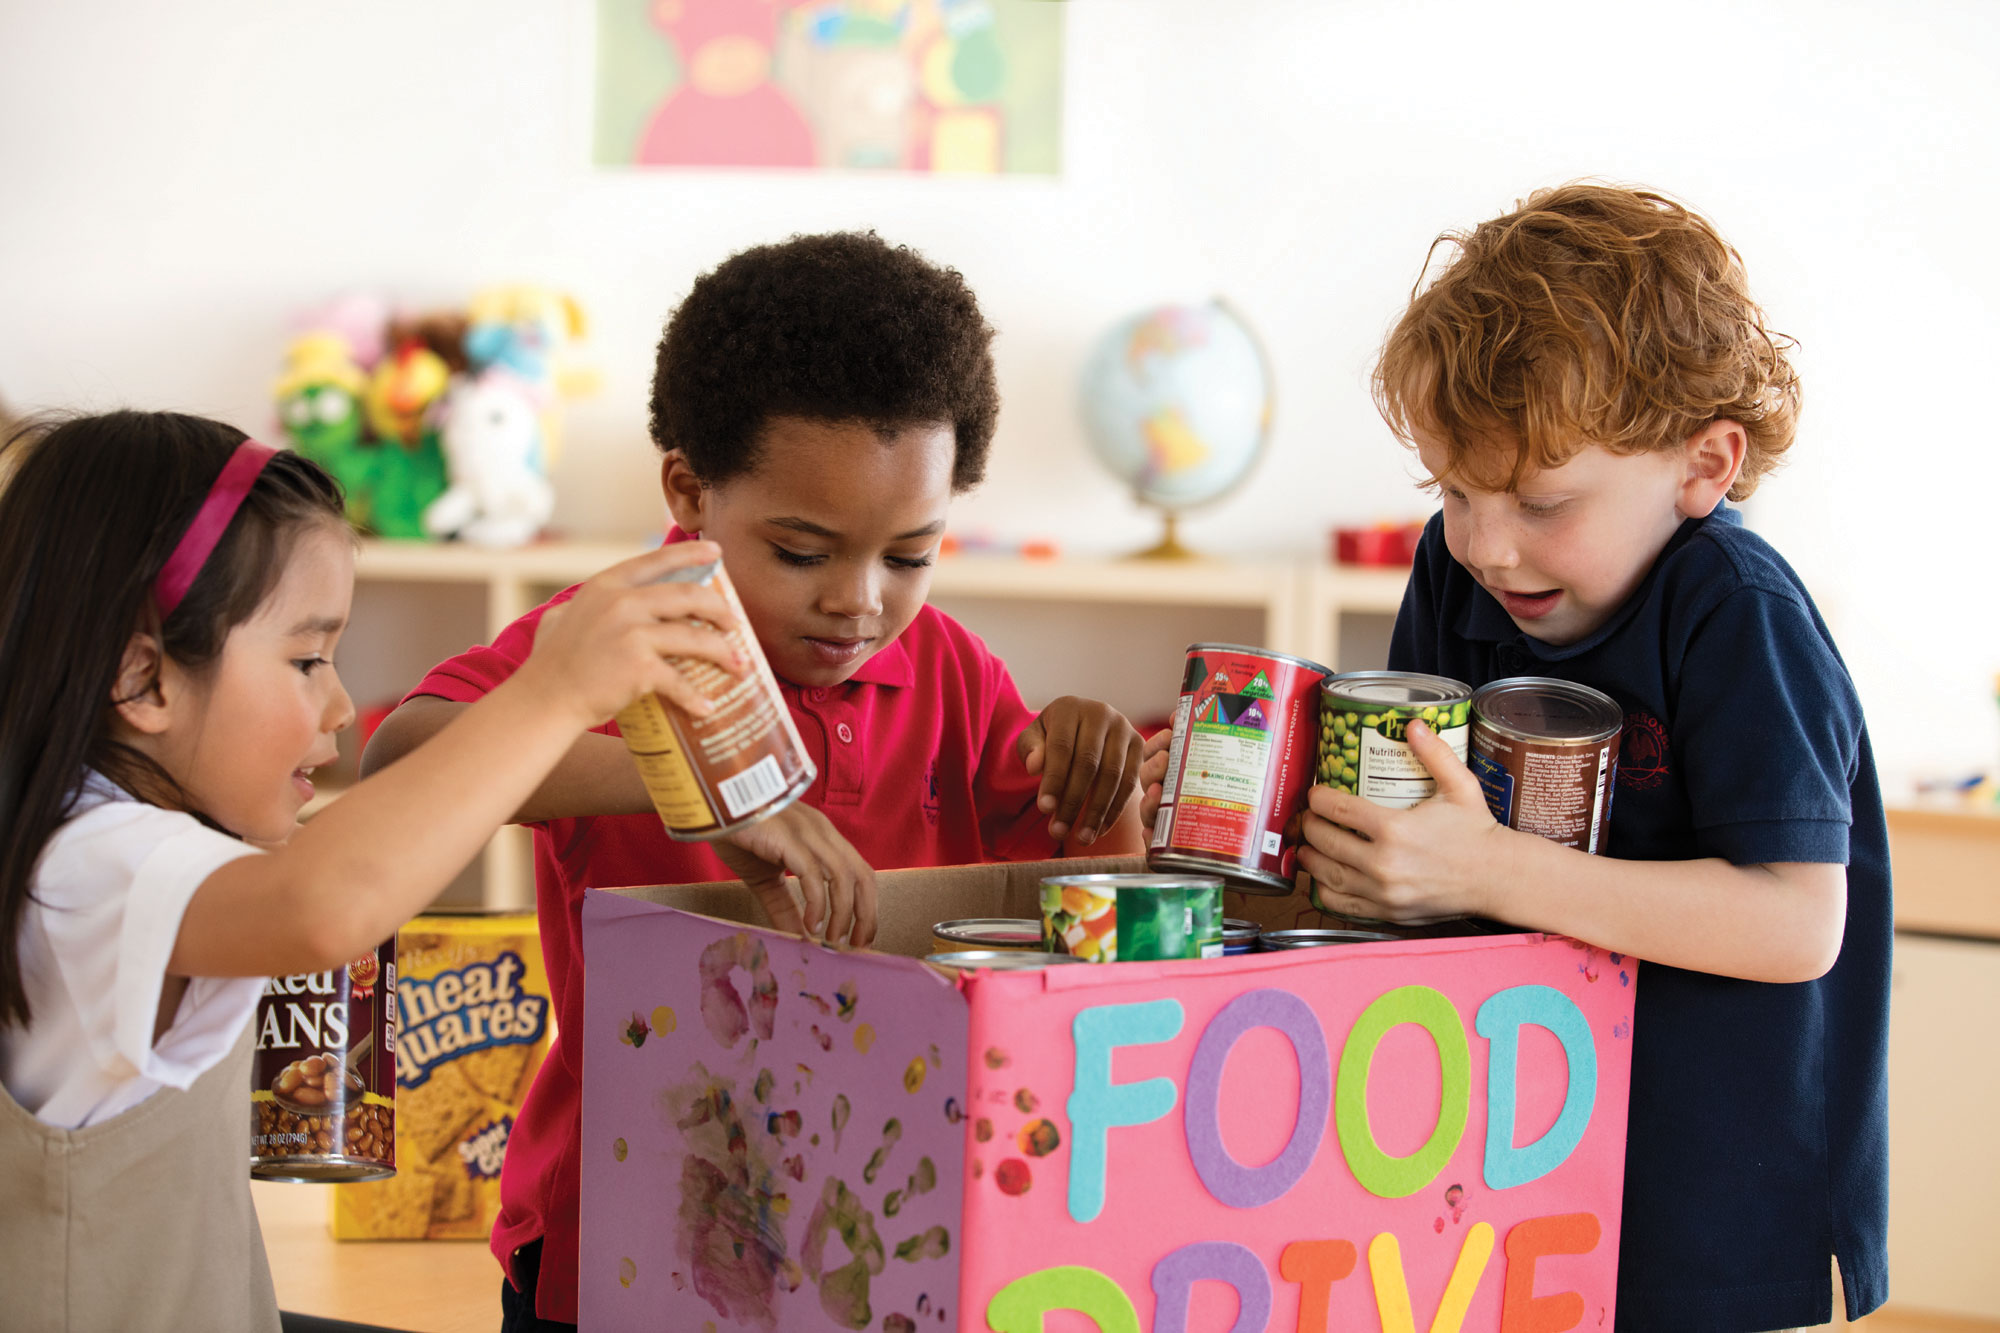 Primrose schools hosts a Caring and Giving Food Drive every year to reinforce an others-centered mindset.